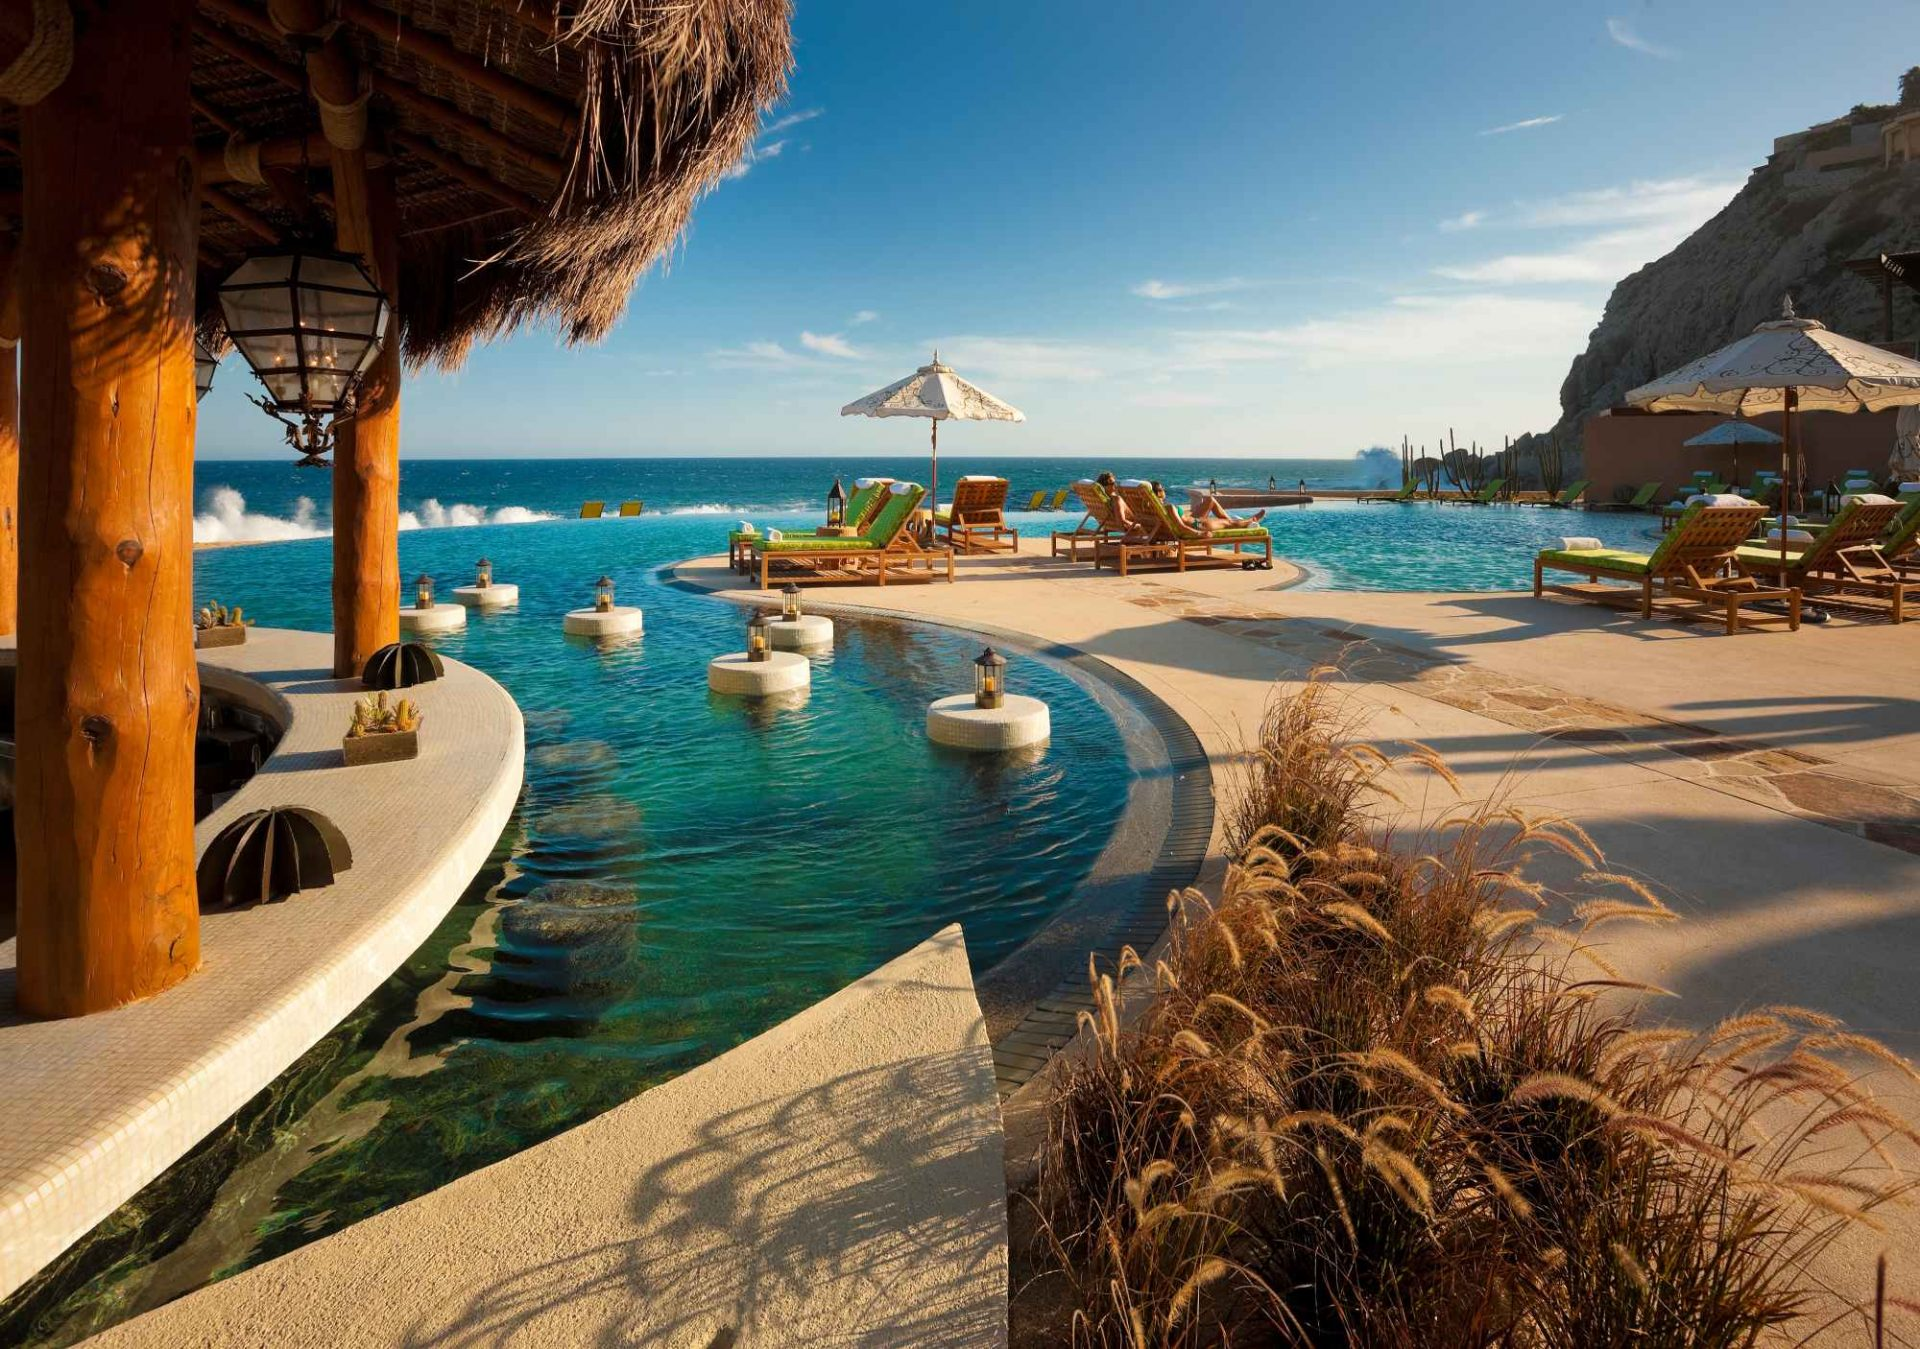 Cabo San Lucas Luxury Resort The Resort At Pedregal